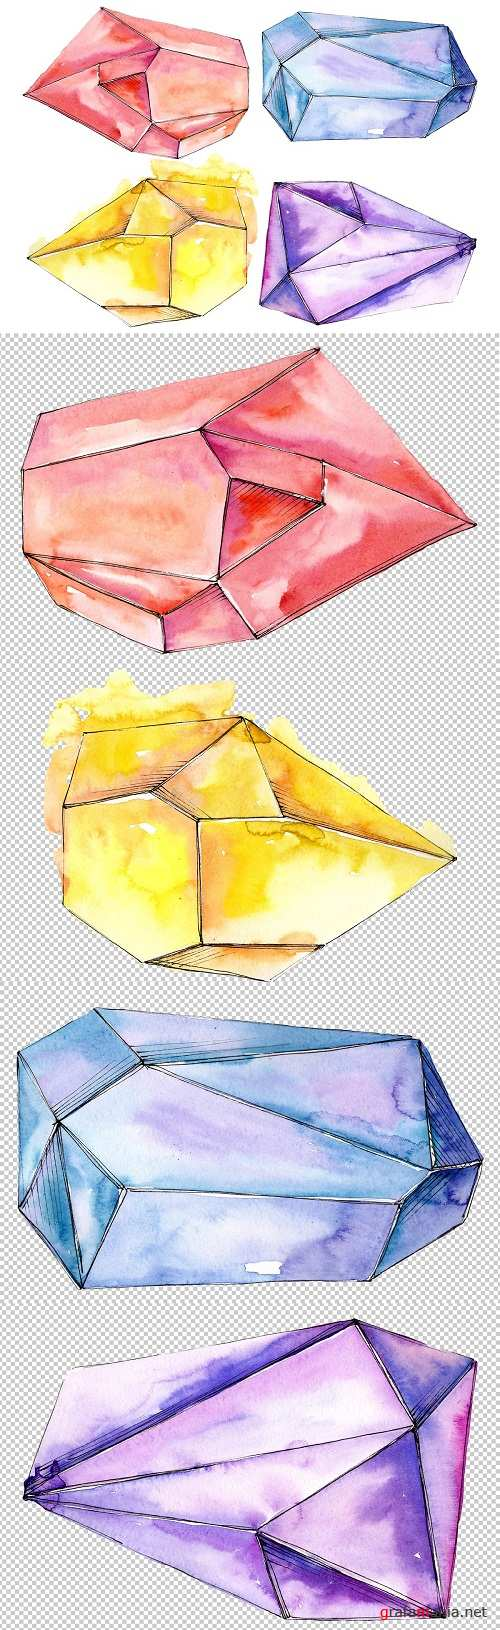 Сrystals red yellow blue Watercolor - 3473484